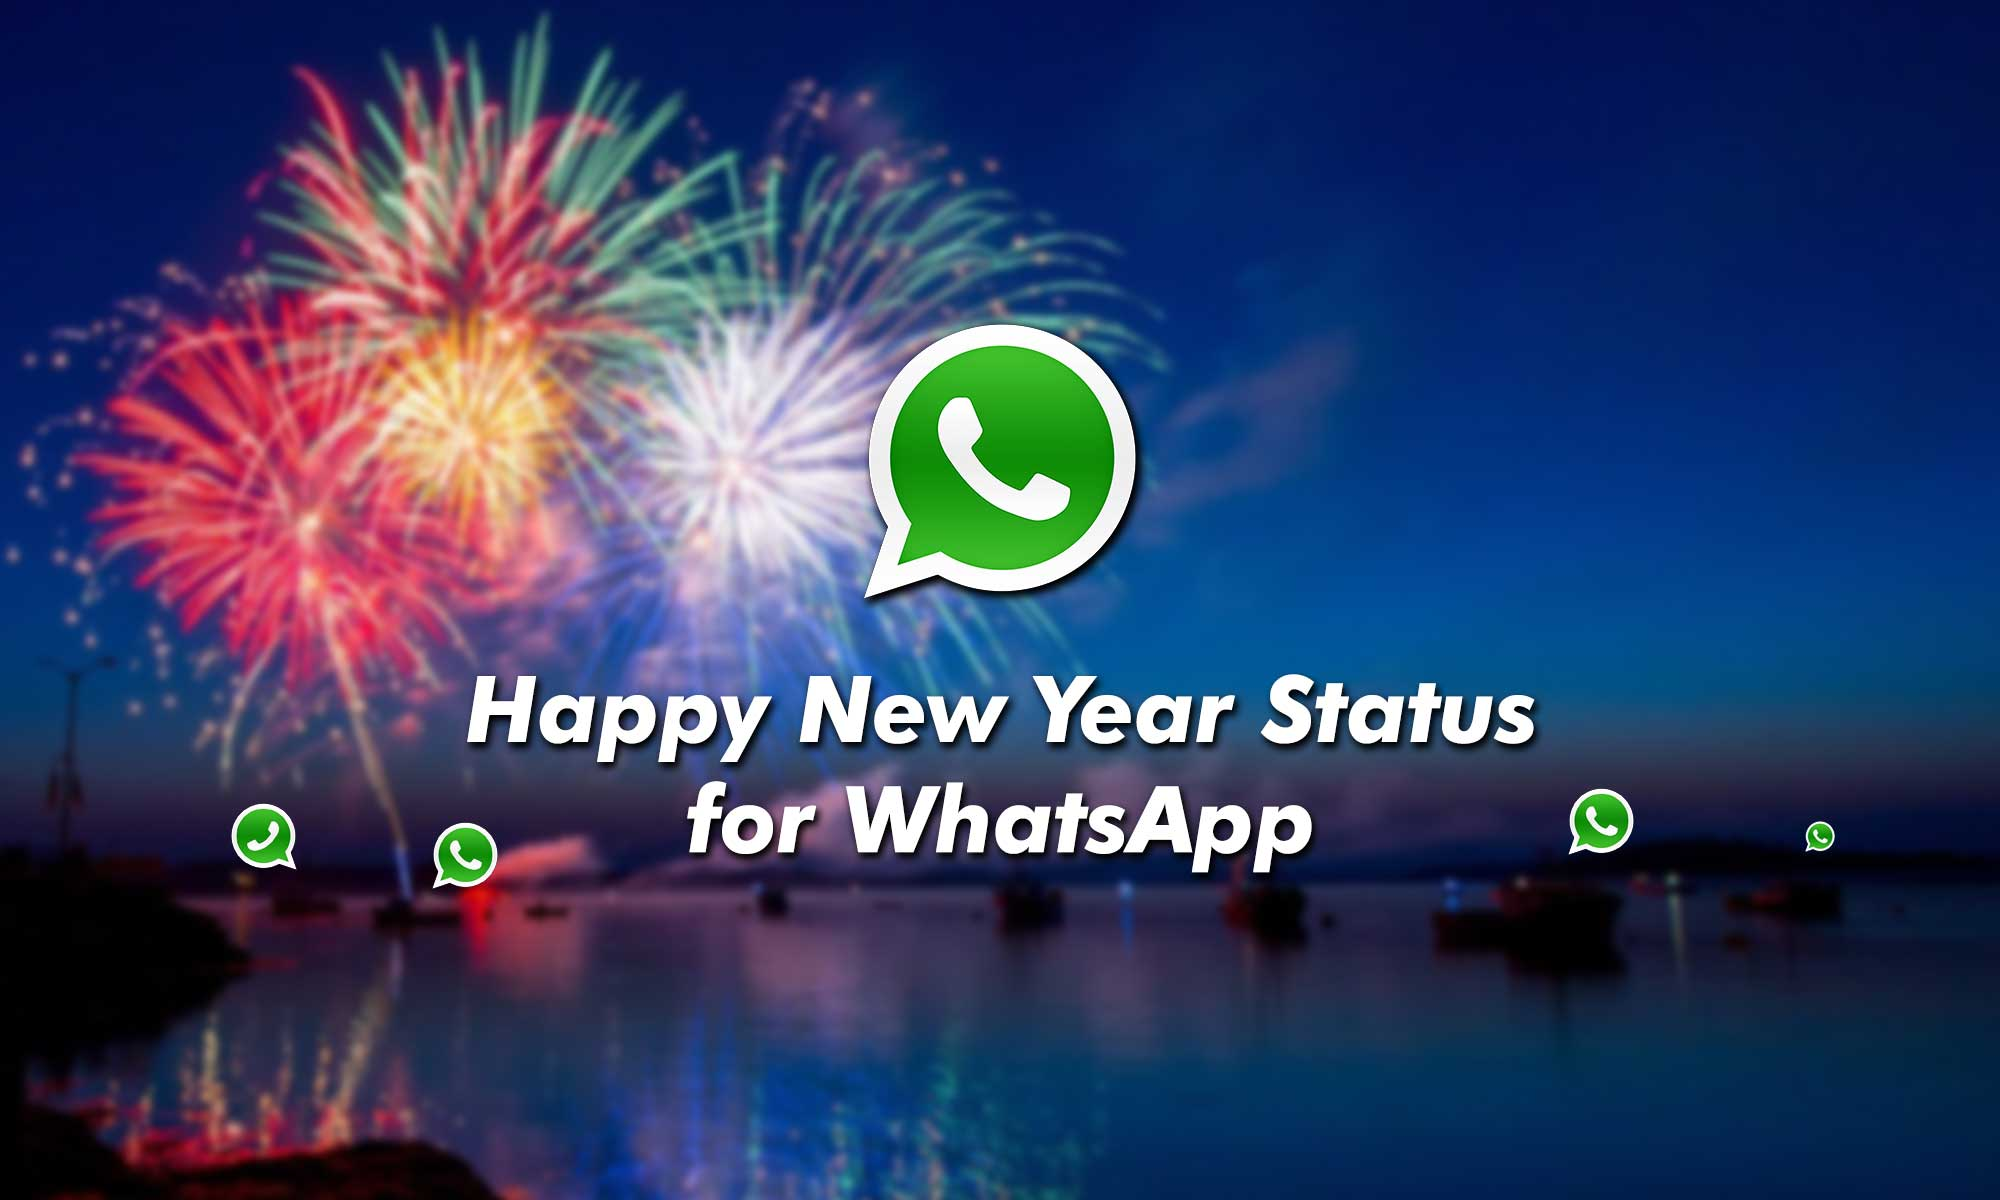 New Year Status for WhatsApp